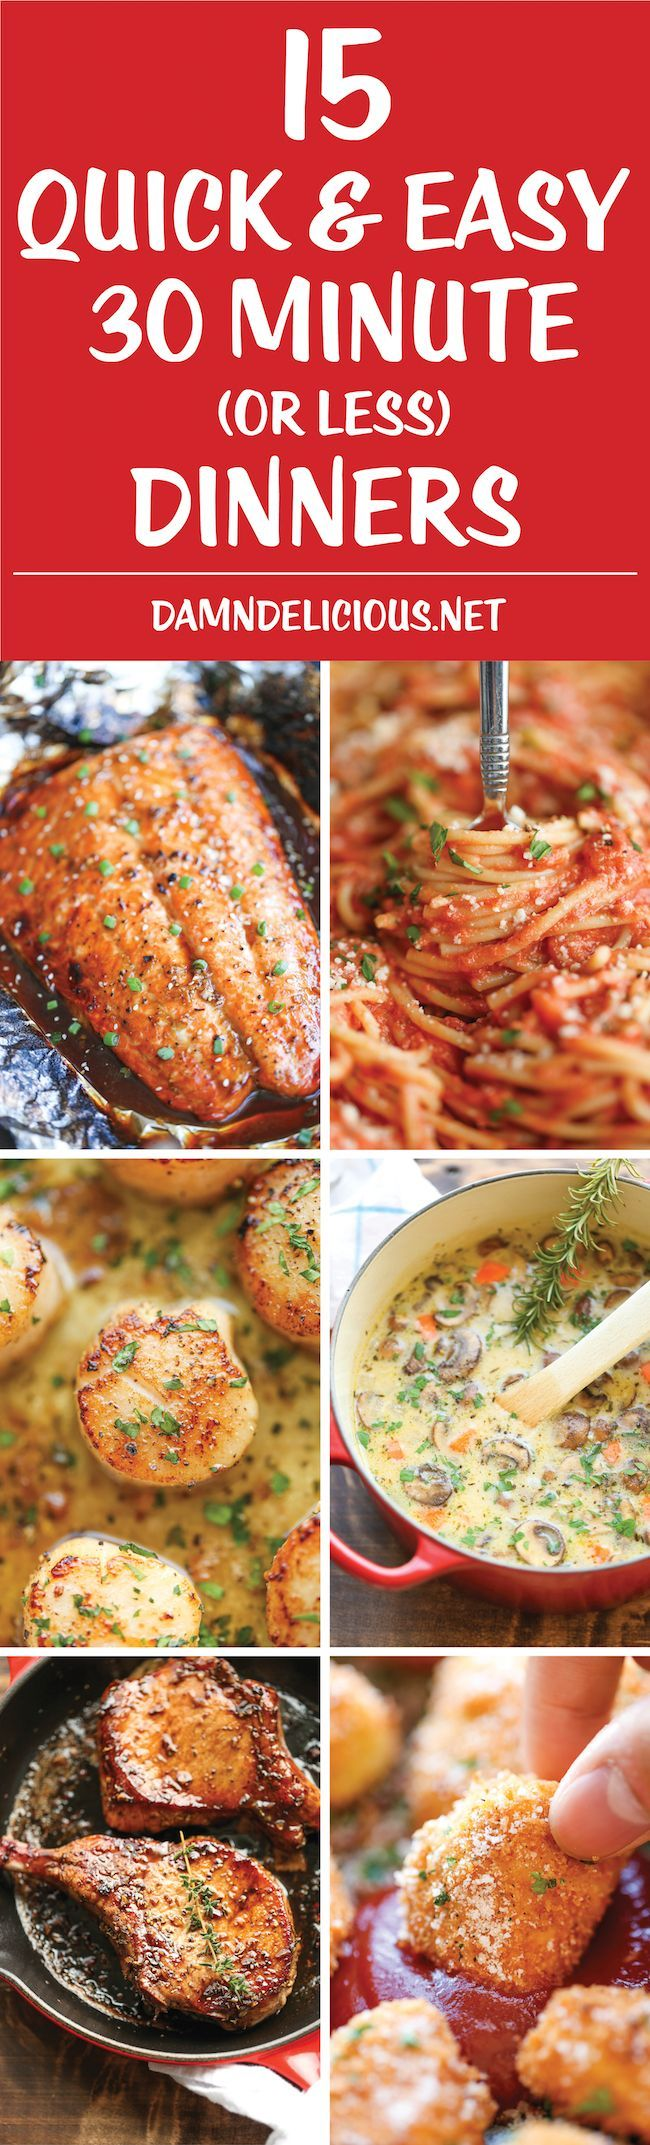 15 Quick And Easy 30 Minute Dinners 30 Minutes Or Less Tables And Cheap Re